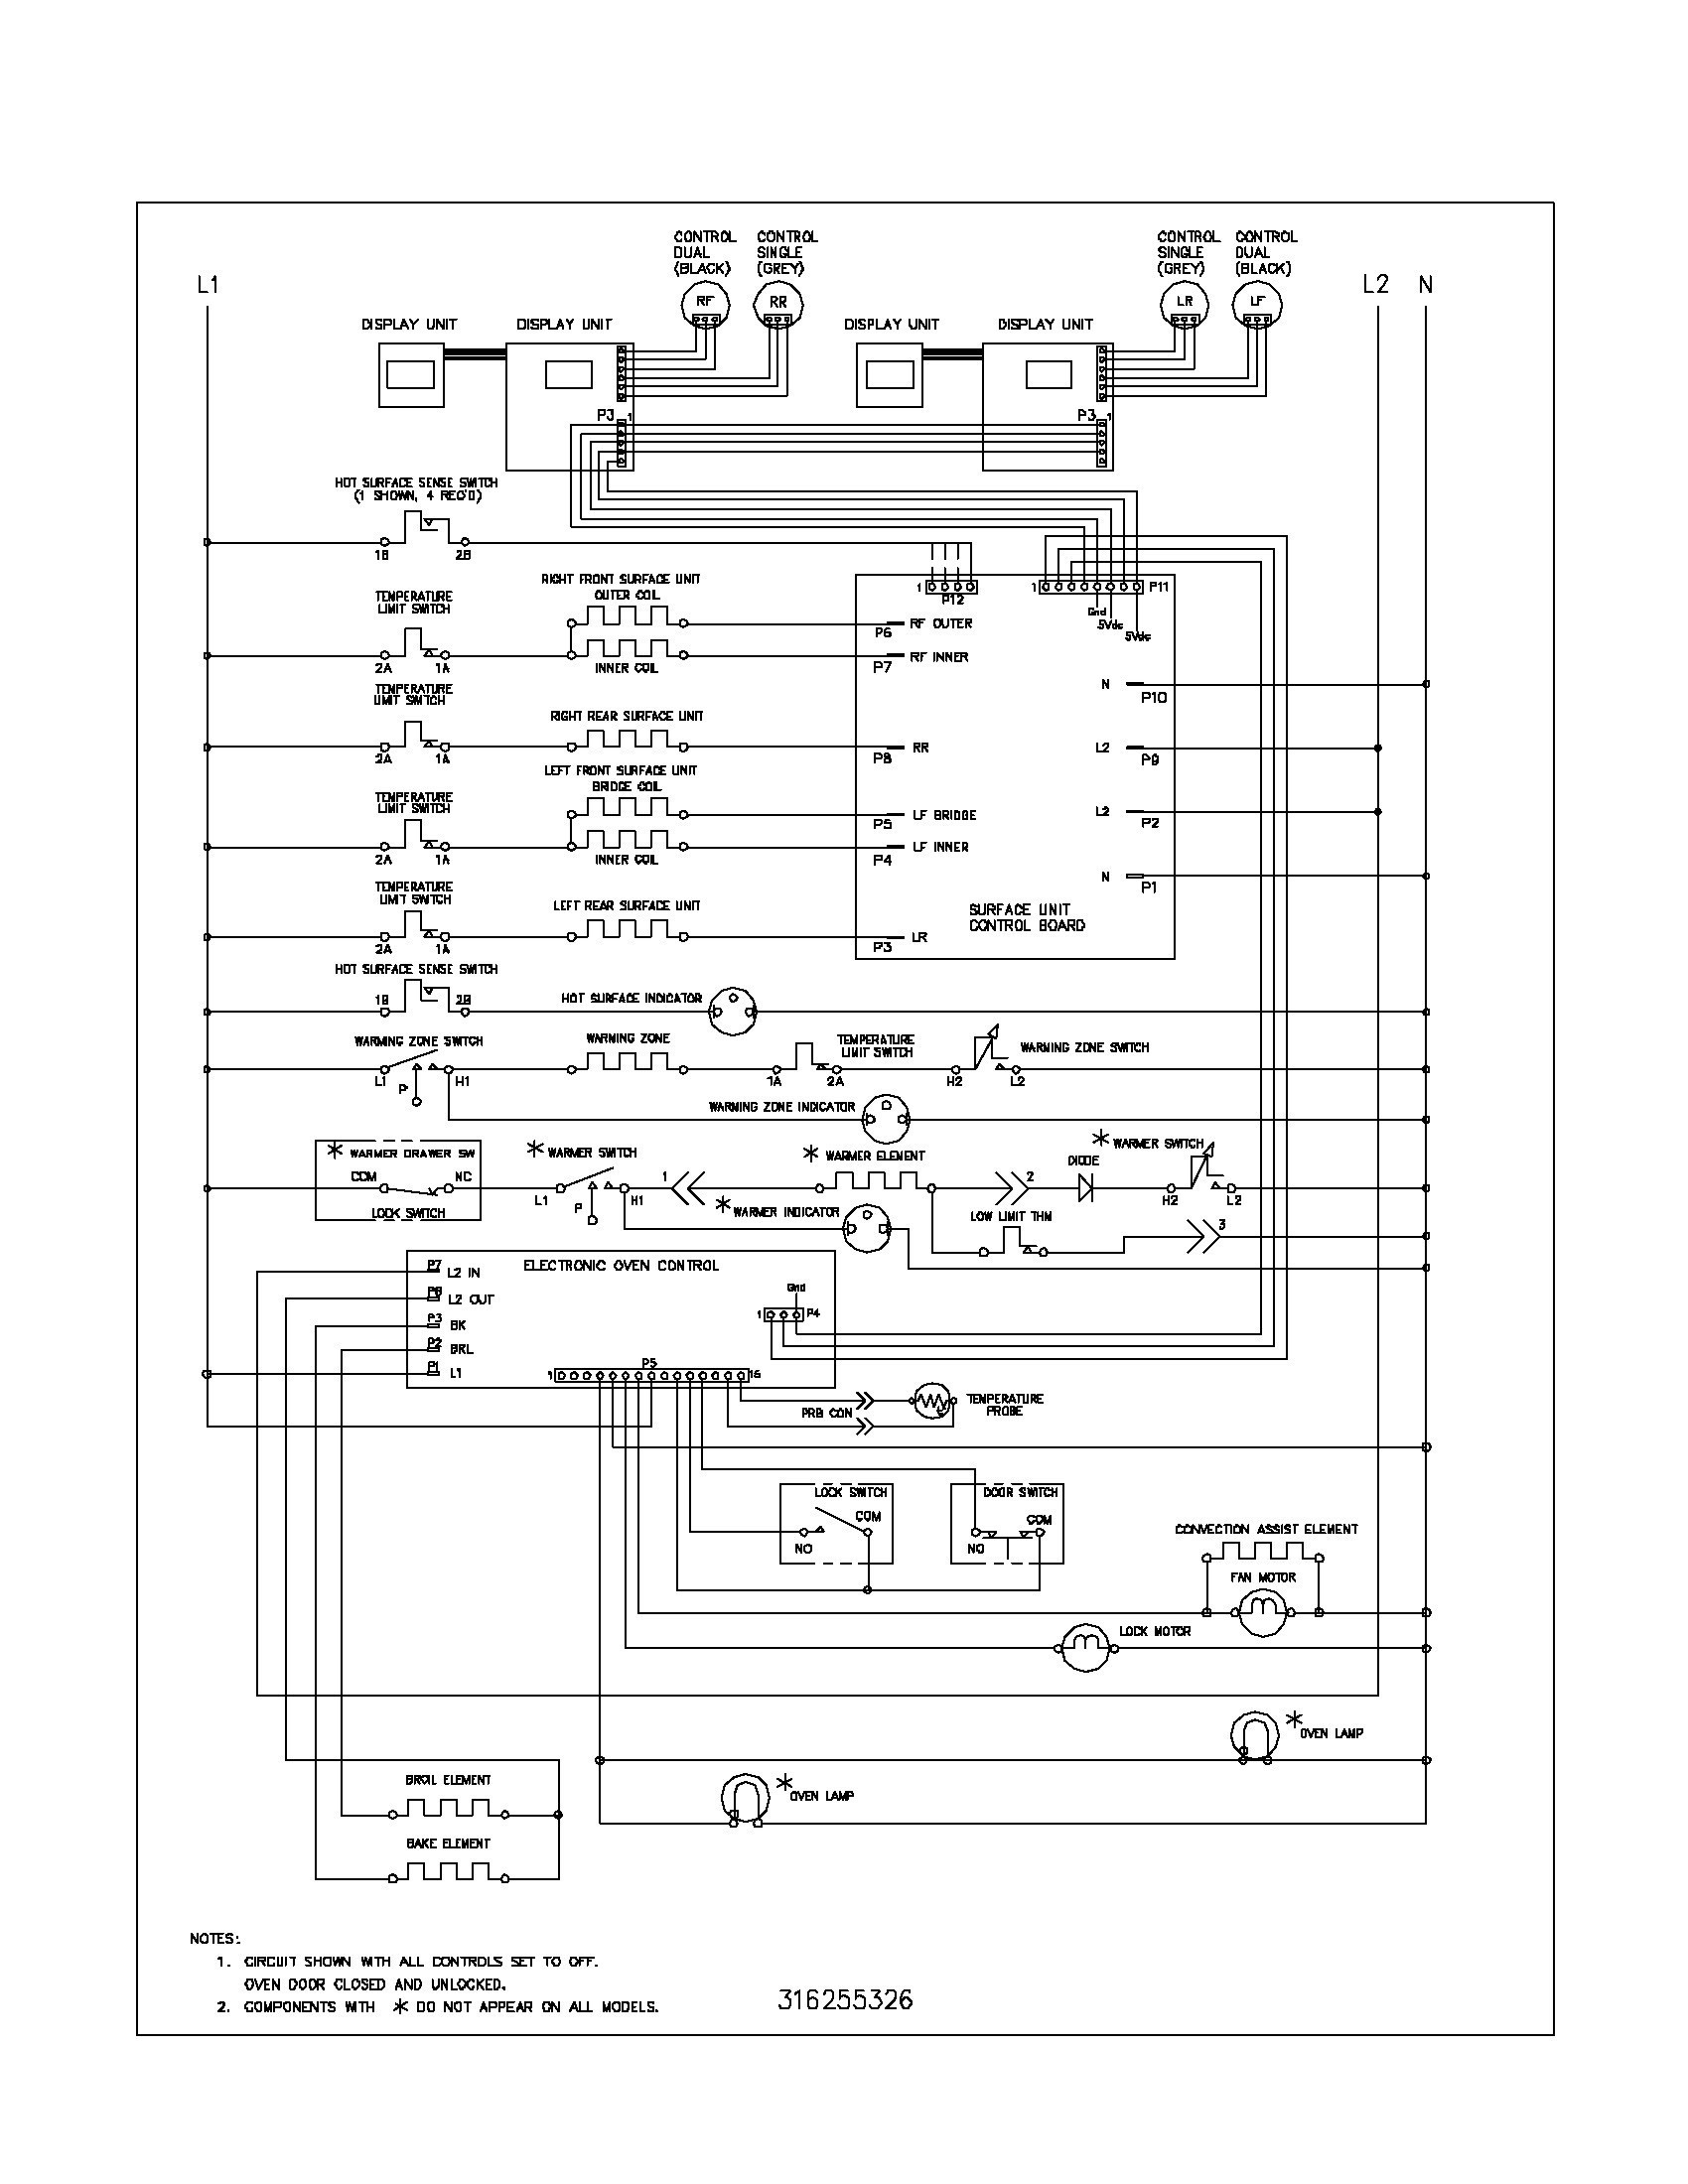 furnace sequencer wiring diagram